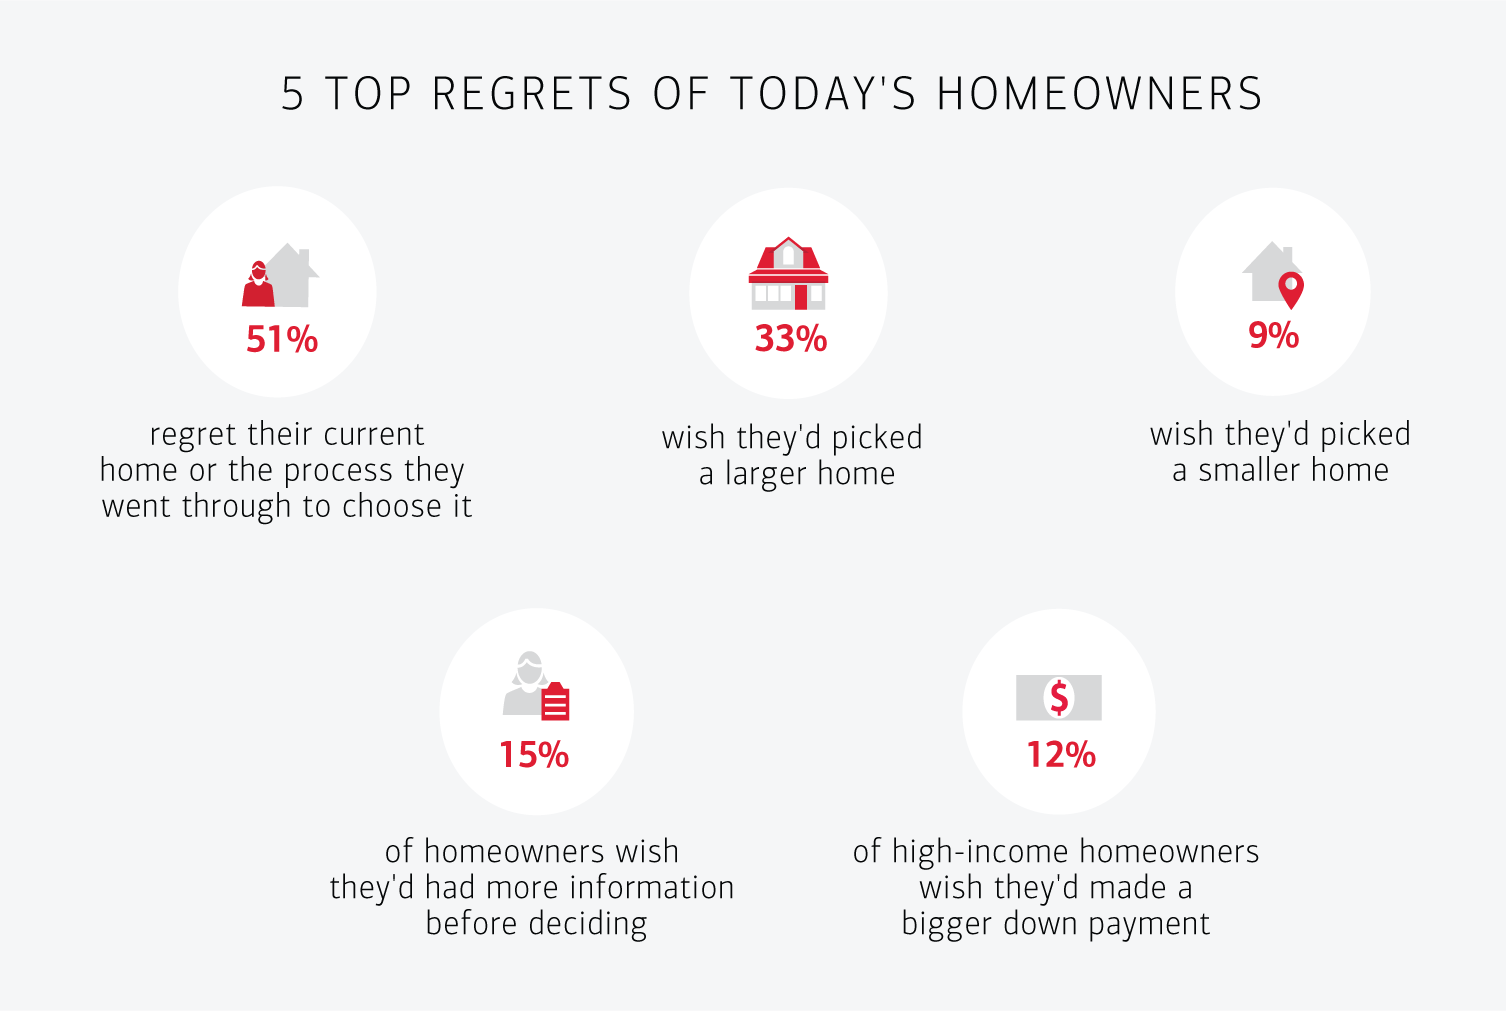 5 TOP REGRETS OF TODAY'S HOMEOWNERS. 51% regret their current home or the process they went through to choose it. 33% wish they'd picked a larger home. 9% wish they'd picked a smaller home. 15% of homeowners wish they'd had more information before deciding. 12% of high-income homeowners wish they'd made a bigger down payment.